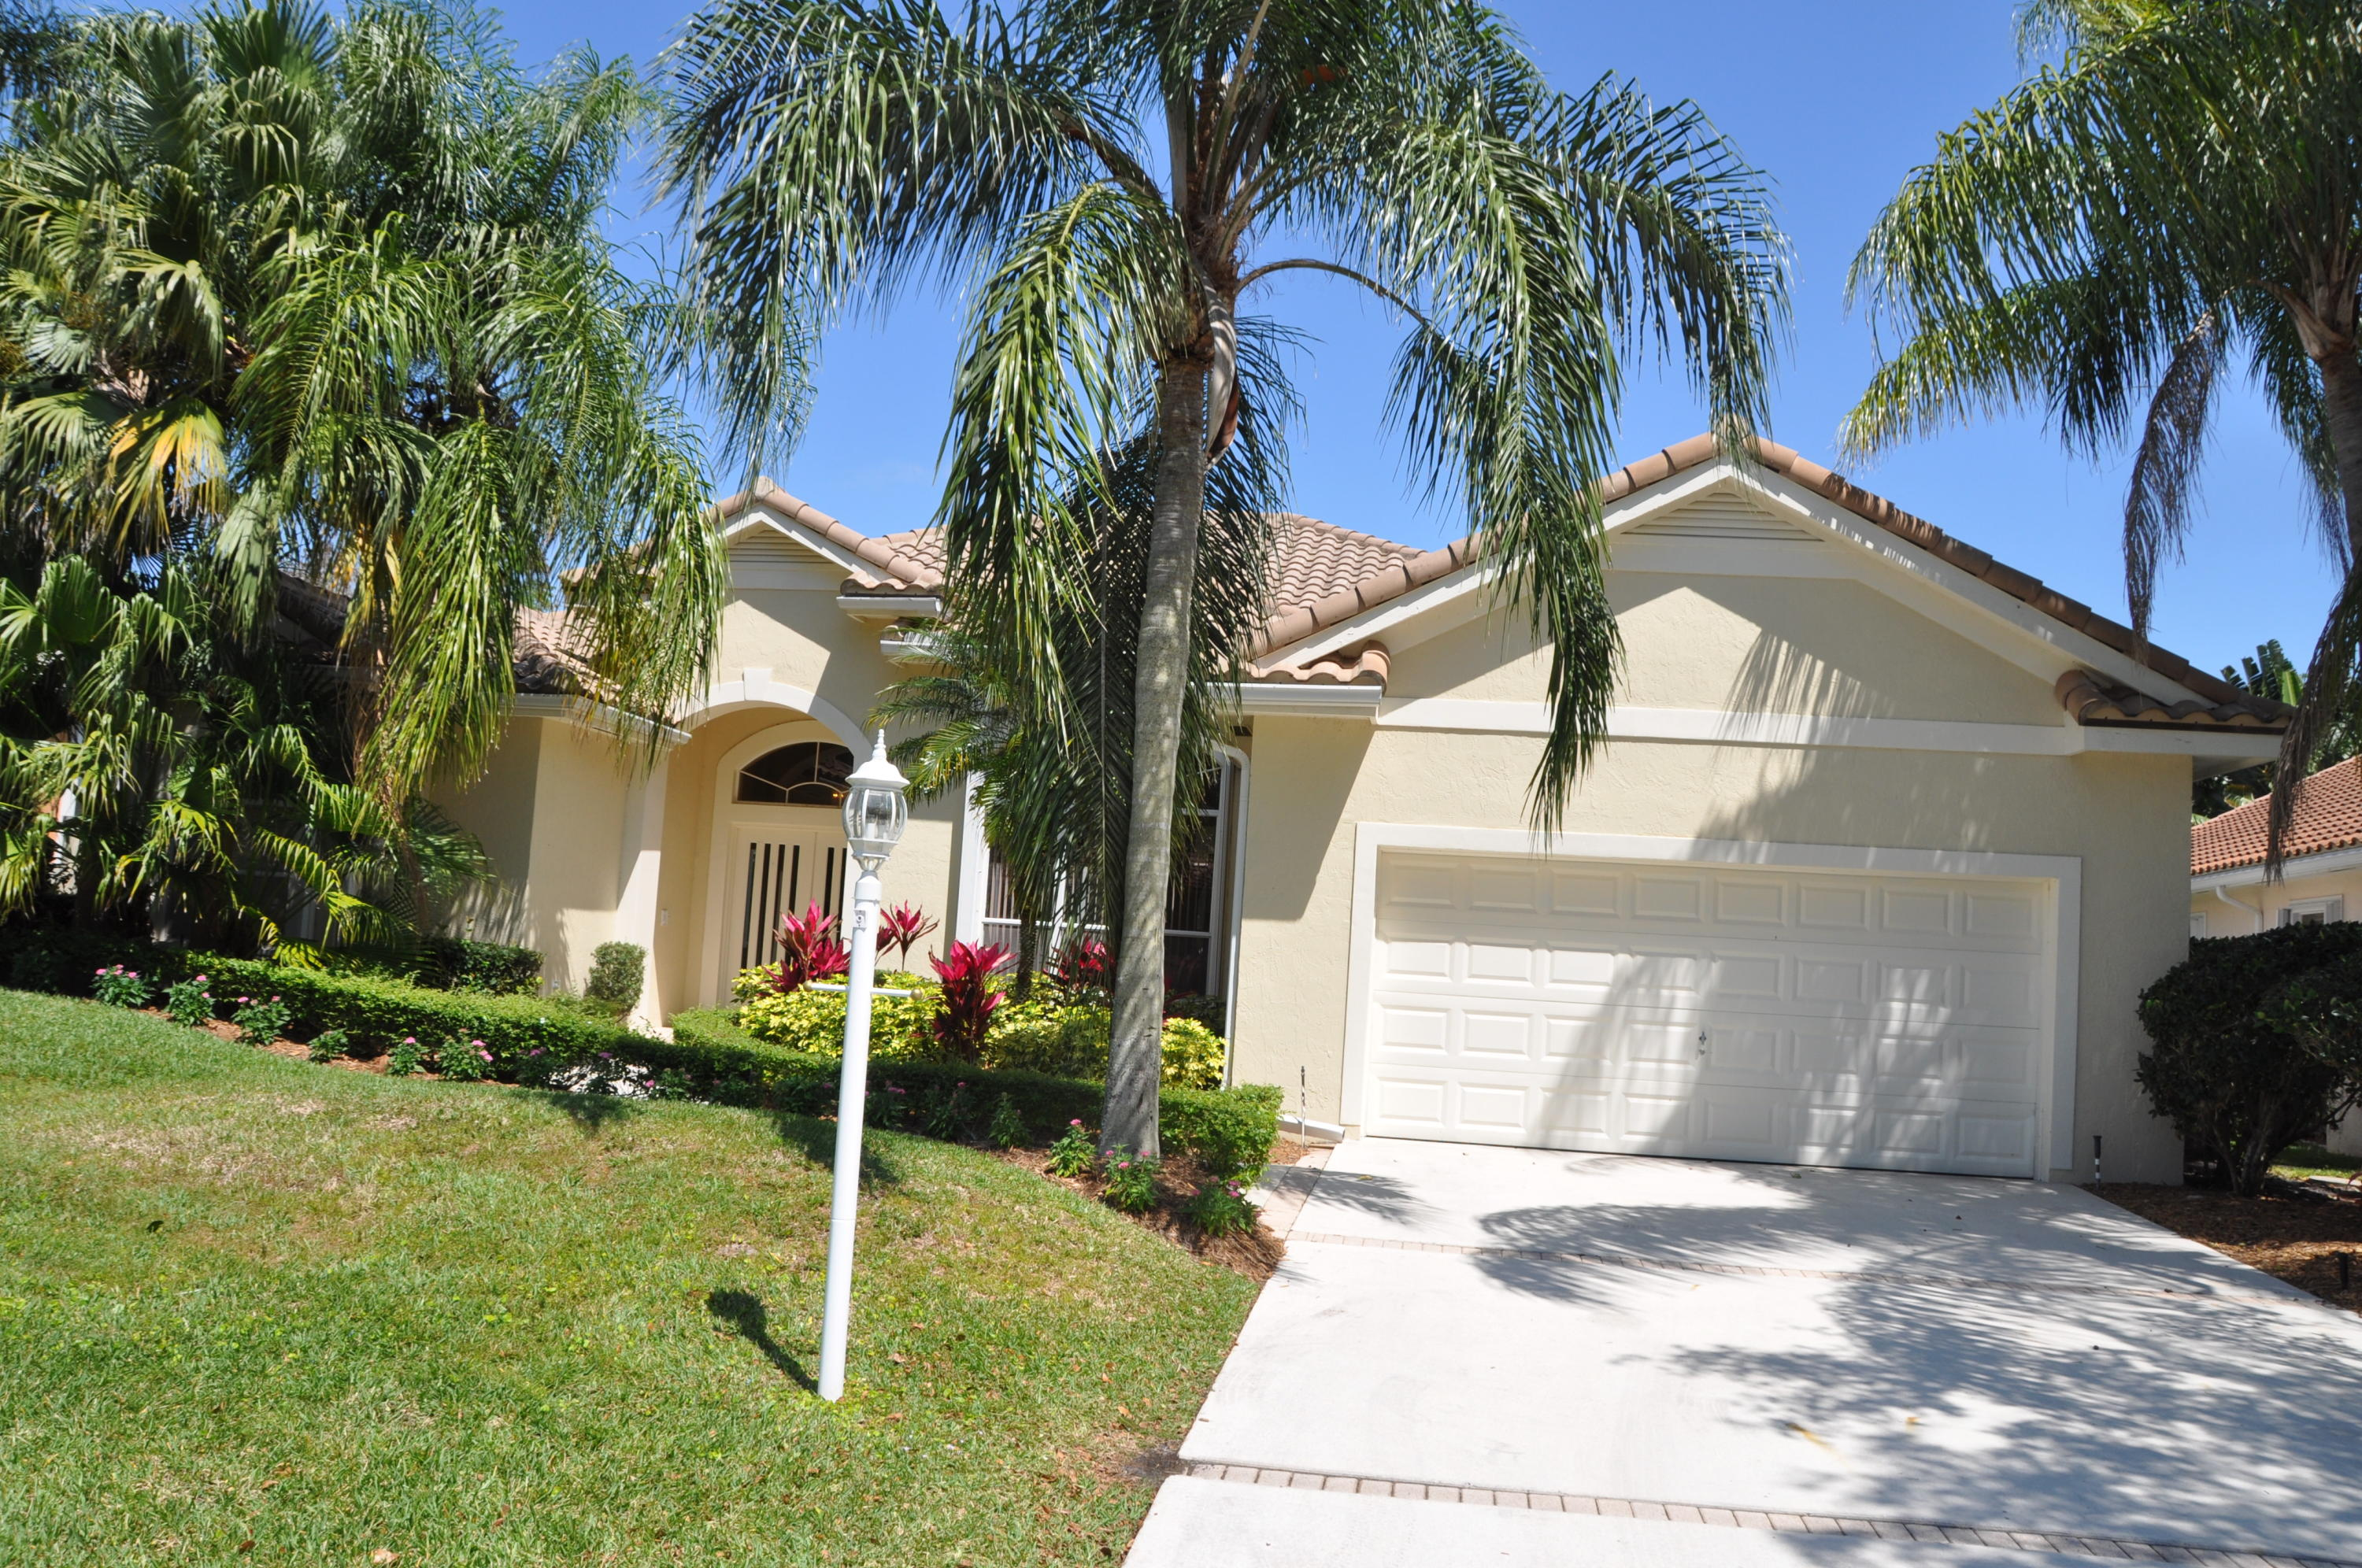 44 Cayman Place, Palm Beach Gardens, Florida 33418, 3 Bedrooms Bedrooms, ,3 BathroomsBathrooms,F,Single family,Cayman,RX-10592409